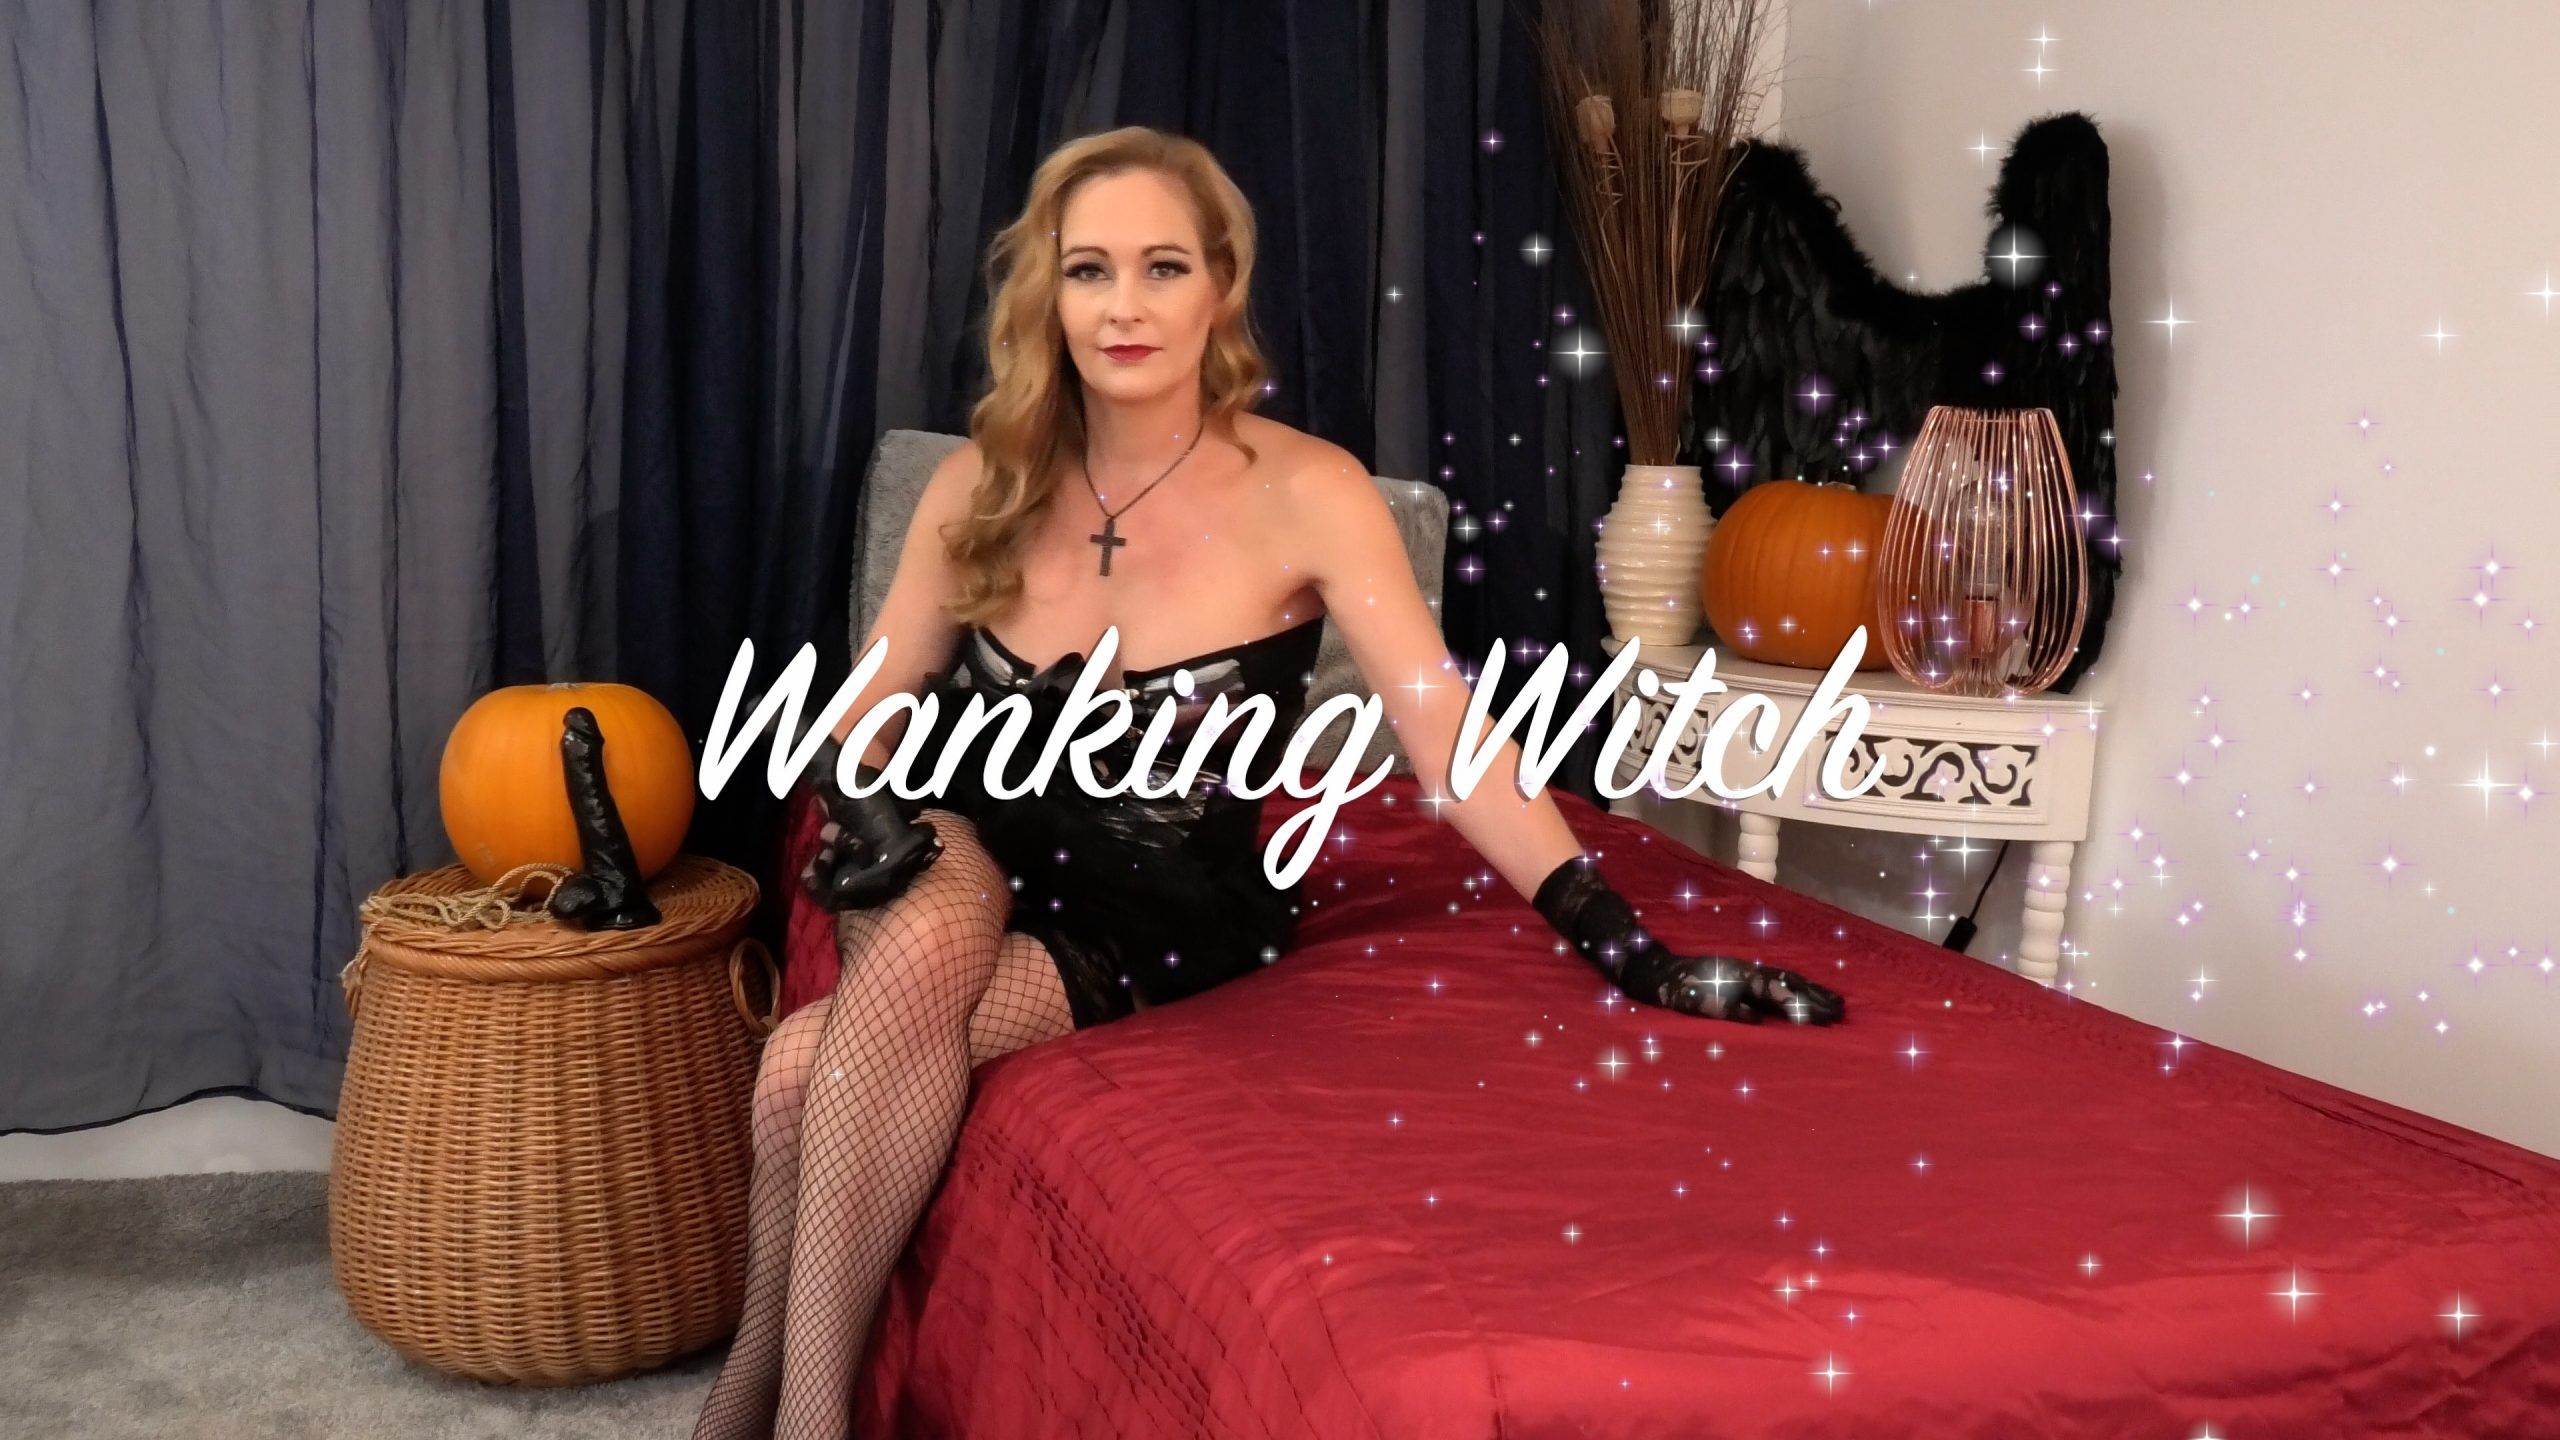 Wanking Witch Title